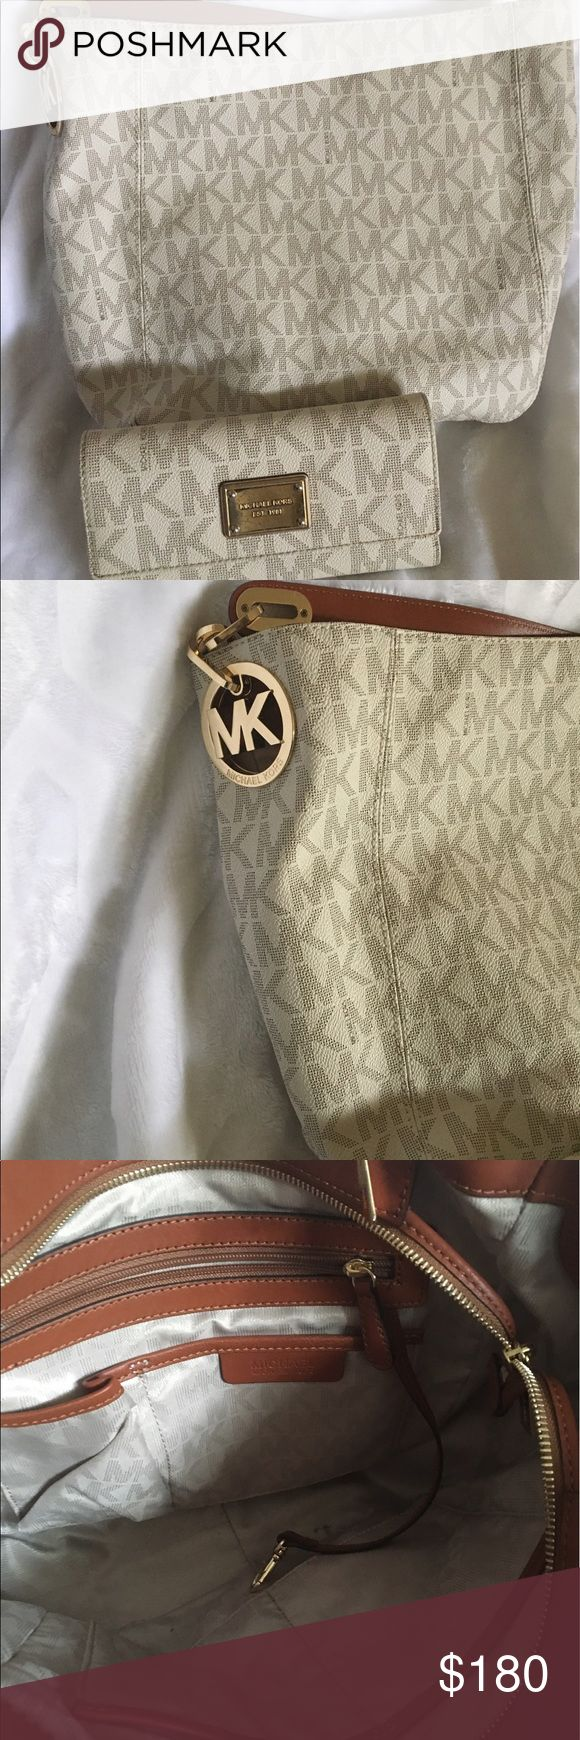 """Michael Kors Fulton vanilla monogram set Selling as a set OR separate. As a set the price is $180 (includes dust bag) The purse alone is $150 (includes dust bag) The wallet alone is $38 Dust bag included.   Purse dimensions: 14"""" wide 10"""" tall 7"""" strap drop Very cute medium sized bag!  The wallet is in good condition but it has some scratching on the metal. No pen or checkbook included. I will ship same day if purchased before 9am. Michael Kors Bags Shoulder Bags"""